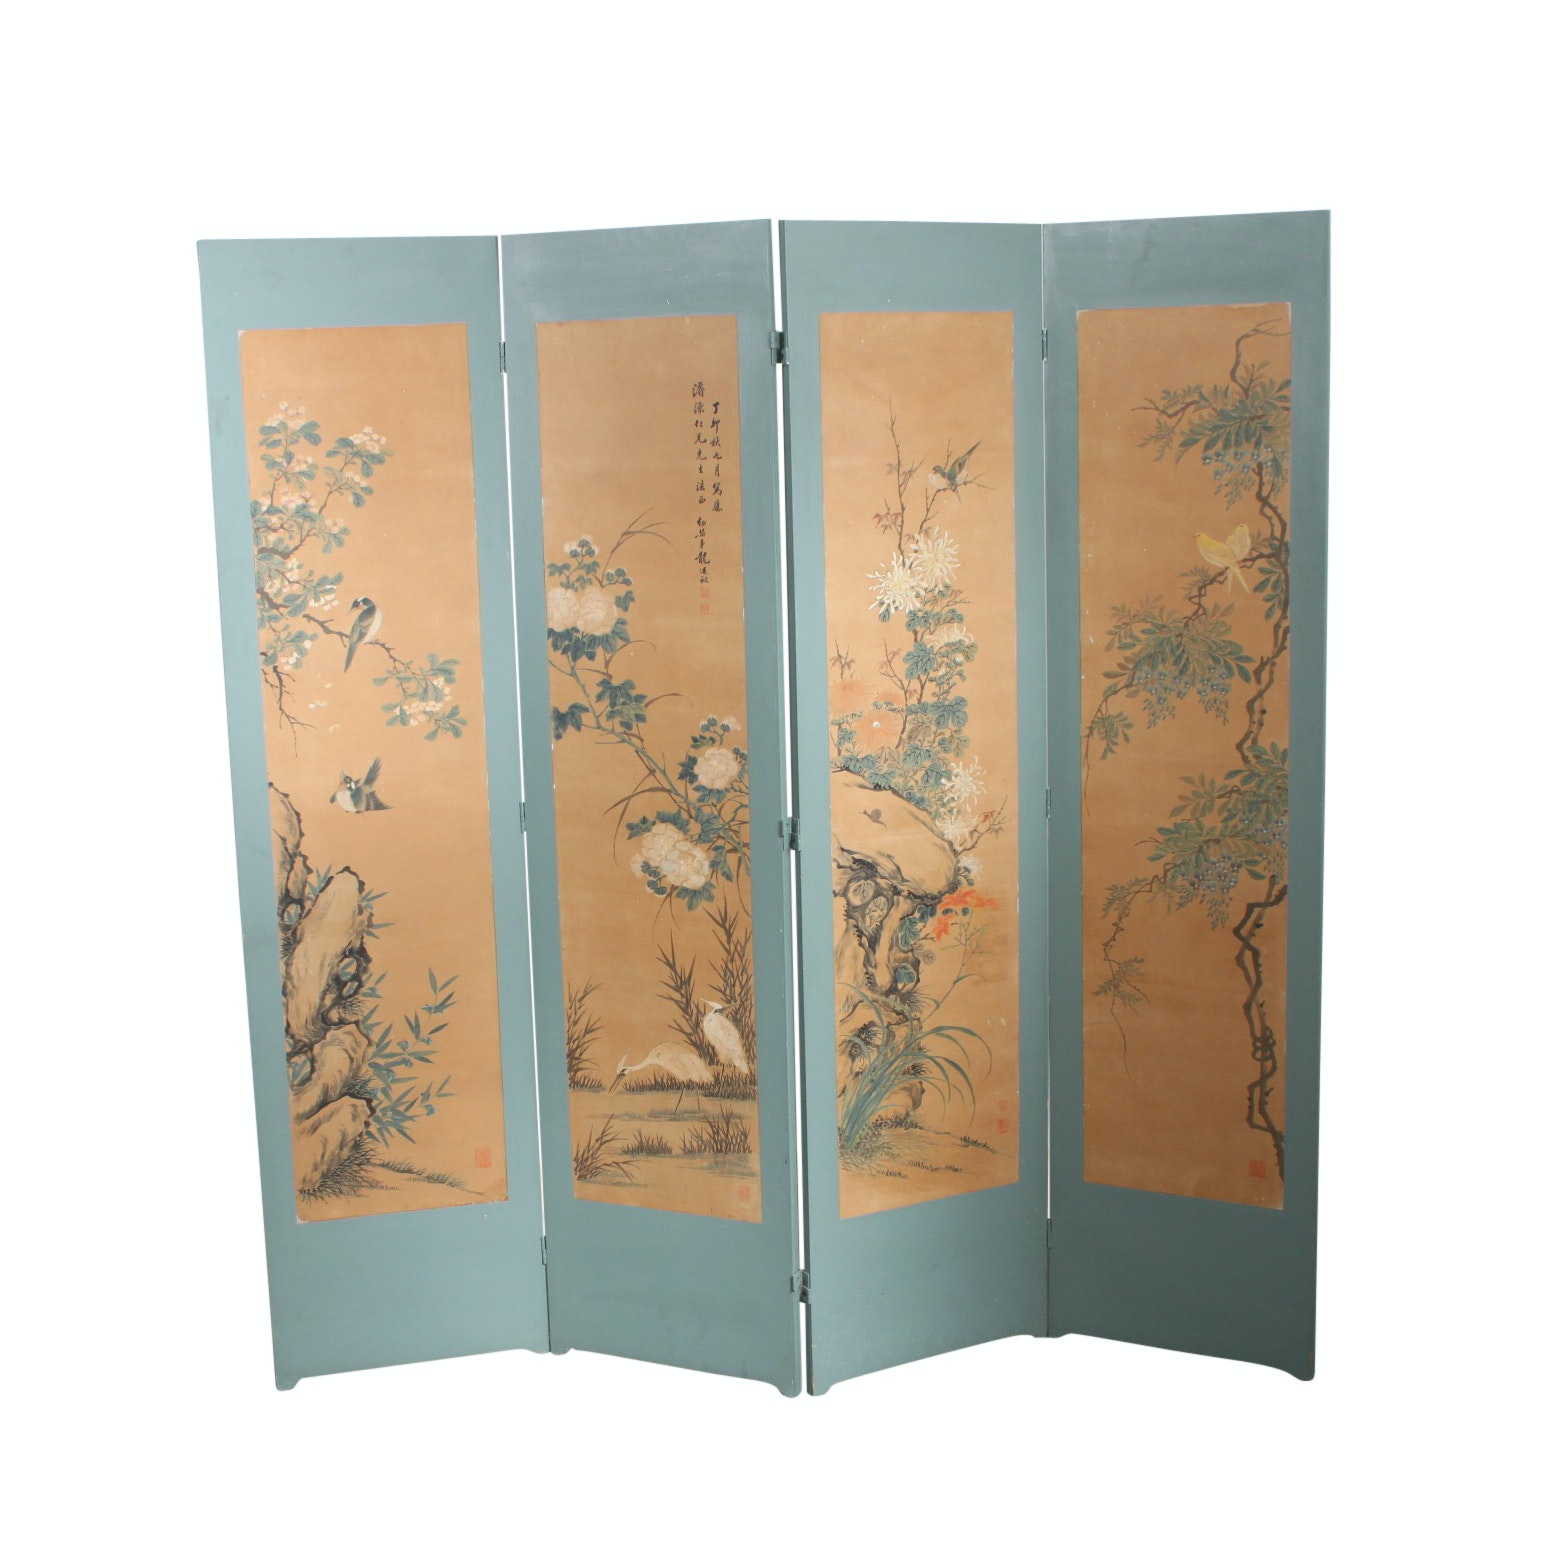 Vintage East Asian Hand-Painted Folding Screen